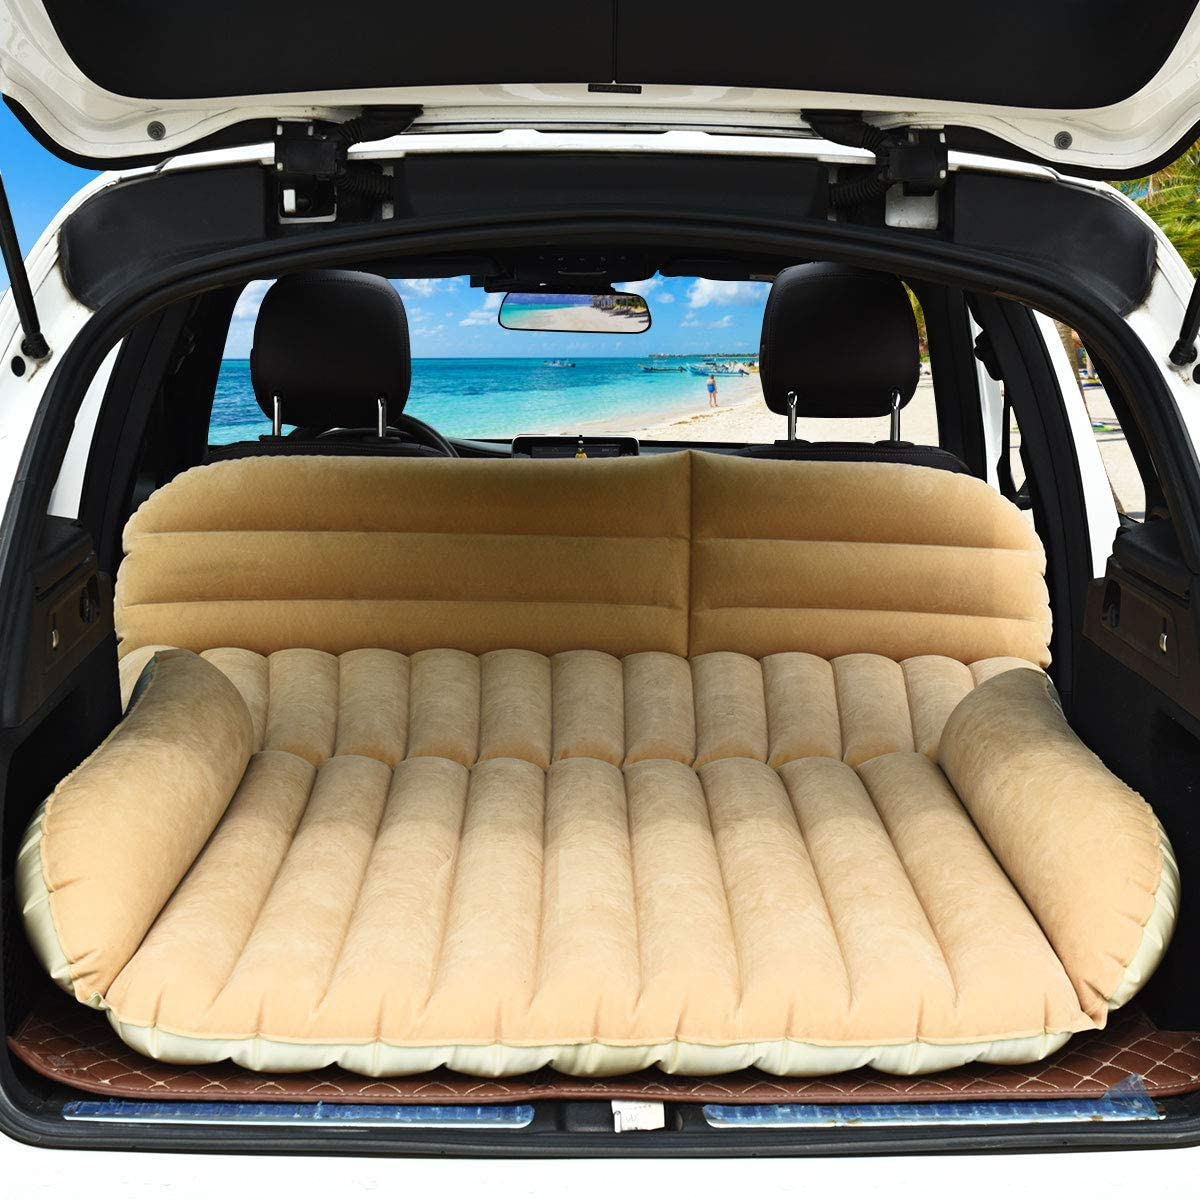 Goplus SUV Air Mattress for Back Seat, Inflatable Car Air Bed with Electric Air Pump Flocking Surface, Portable Car Mattress for Camping Travel, Thickened Home Sleeping Pad Fast Inflation